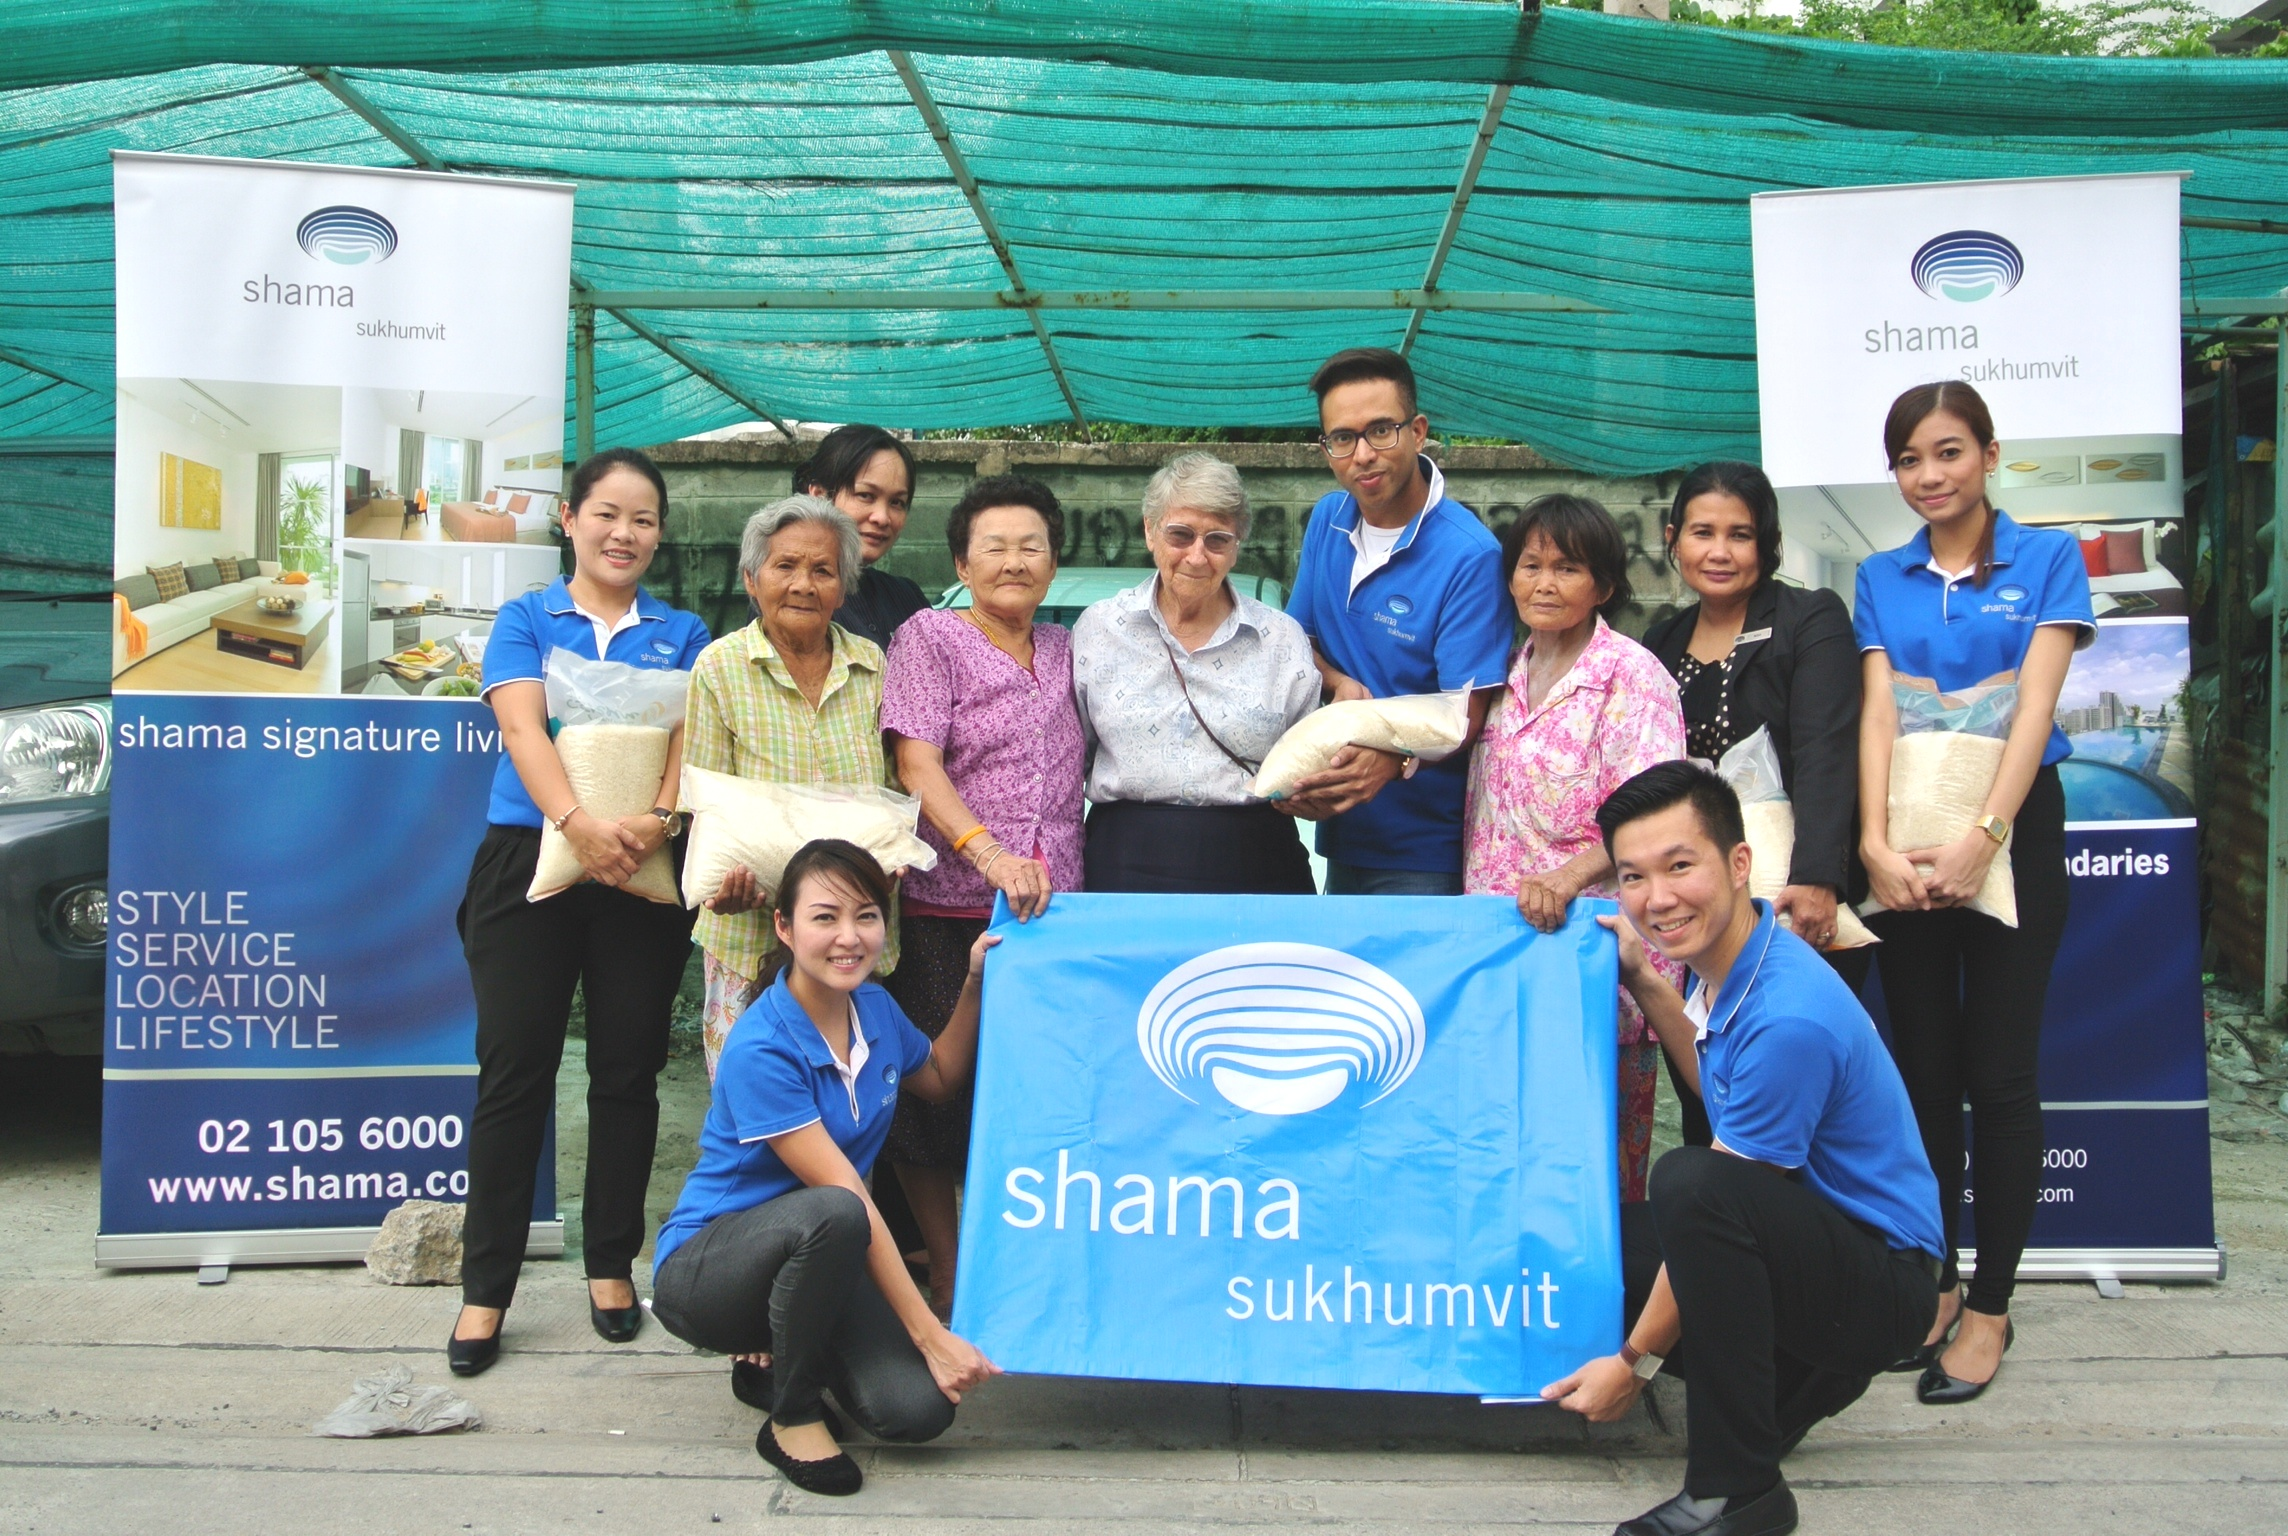 Shama Sukhumvit Bangkok -Food Without Boundaries